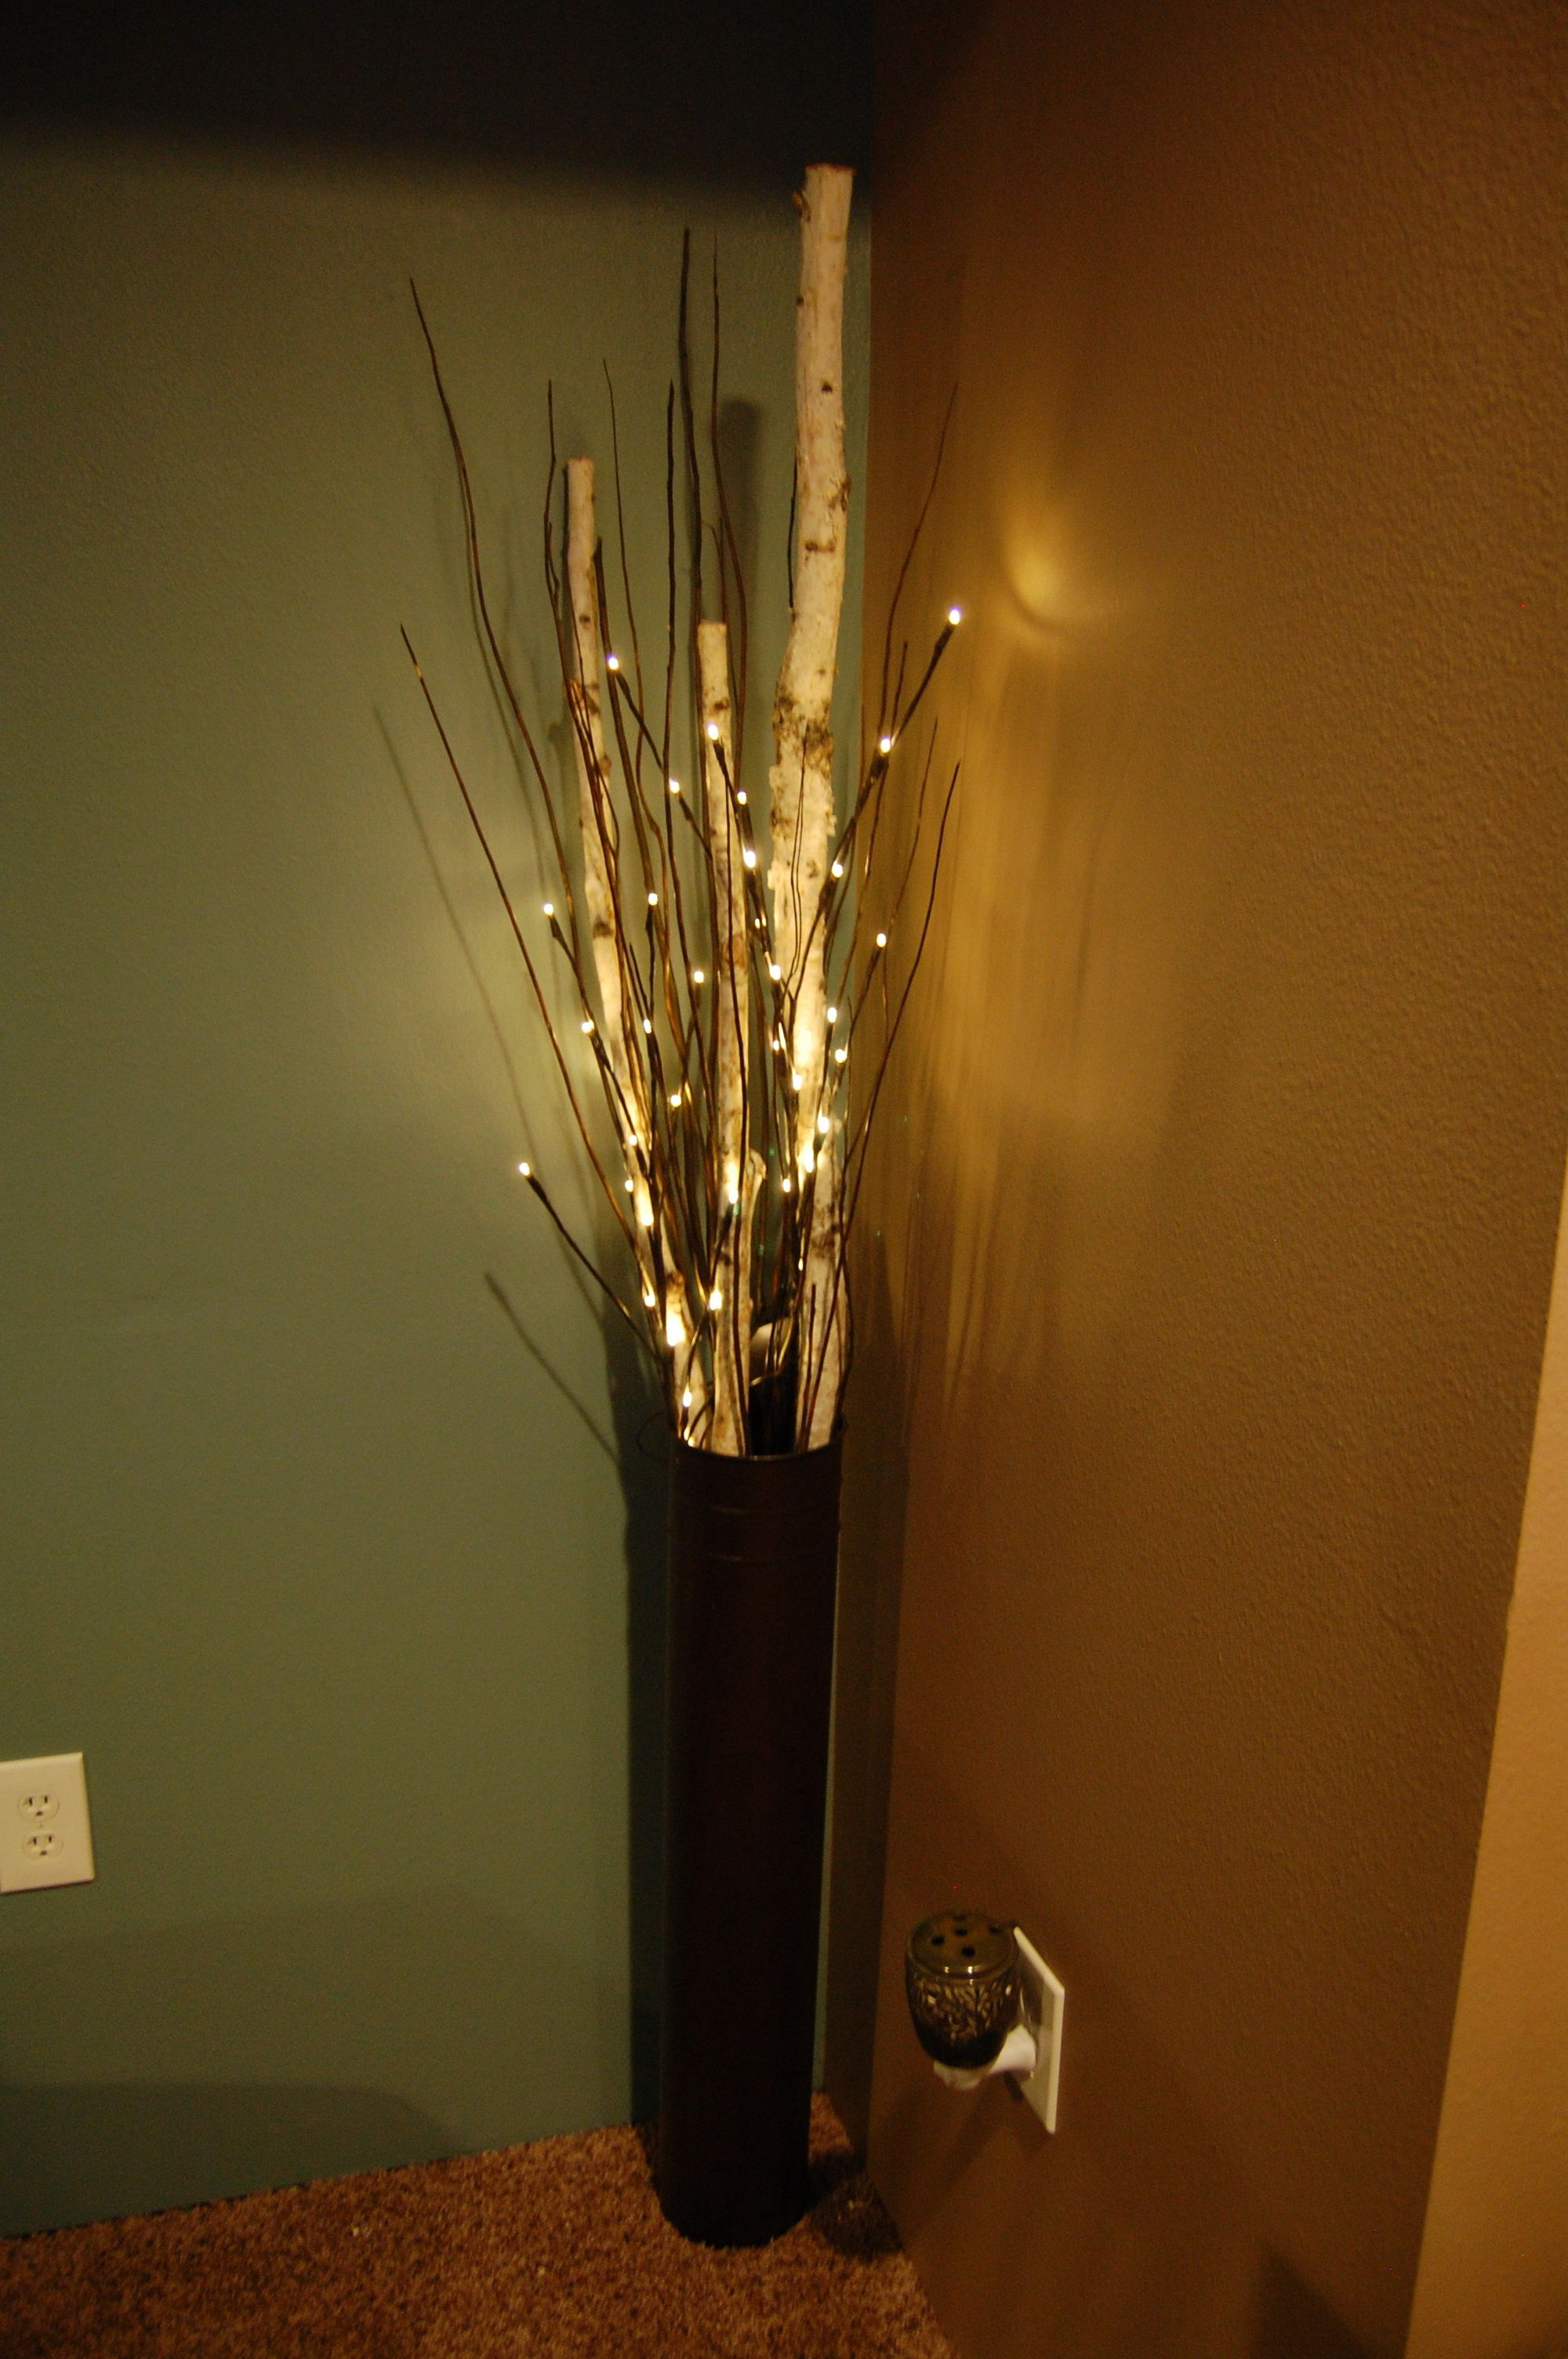 New Project With Birch Timed Branch Lights And Branches Floor Vase Decor Floor Vase Birch Tree Decor